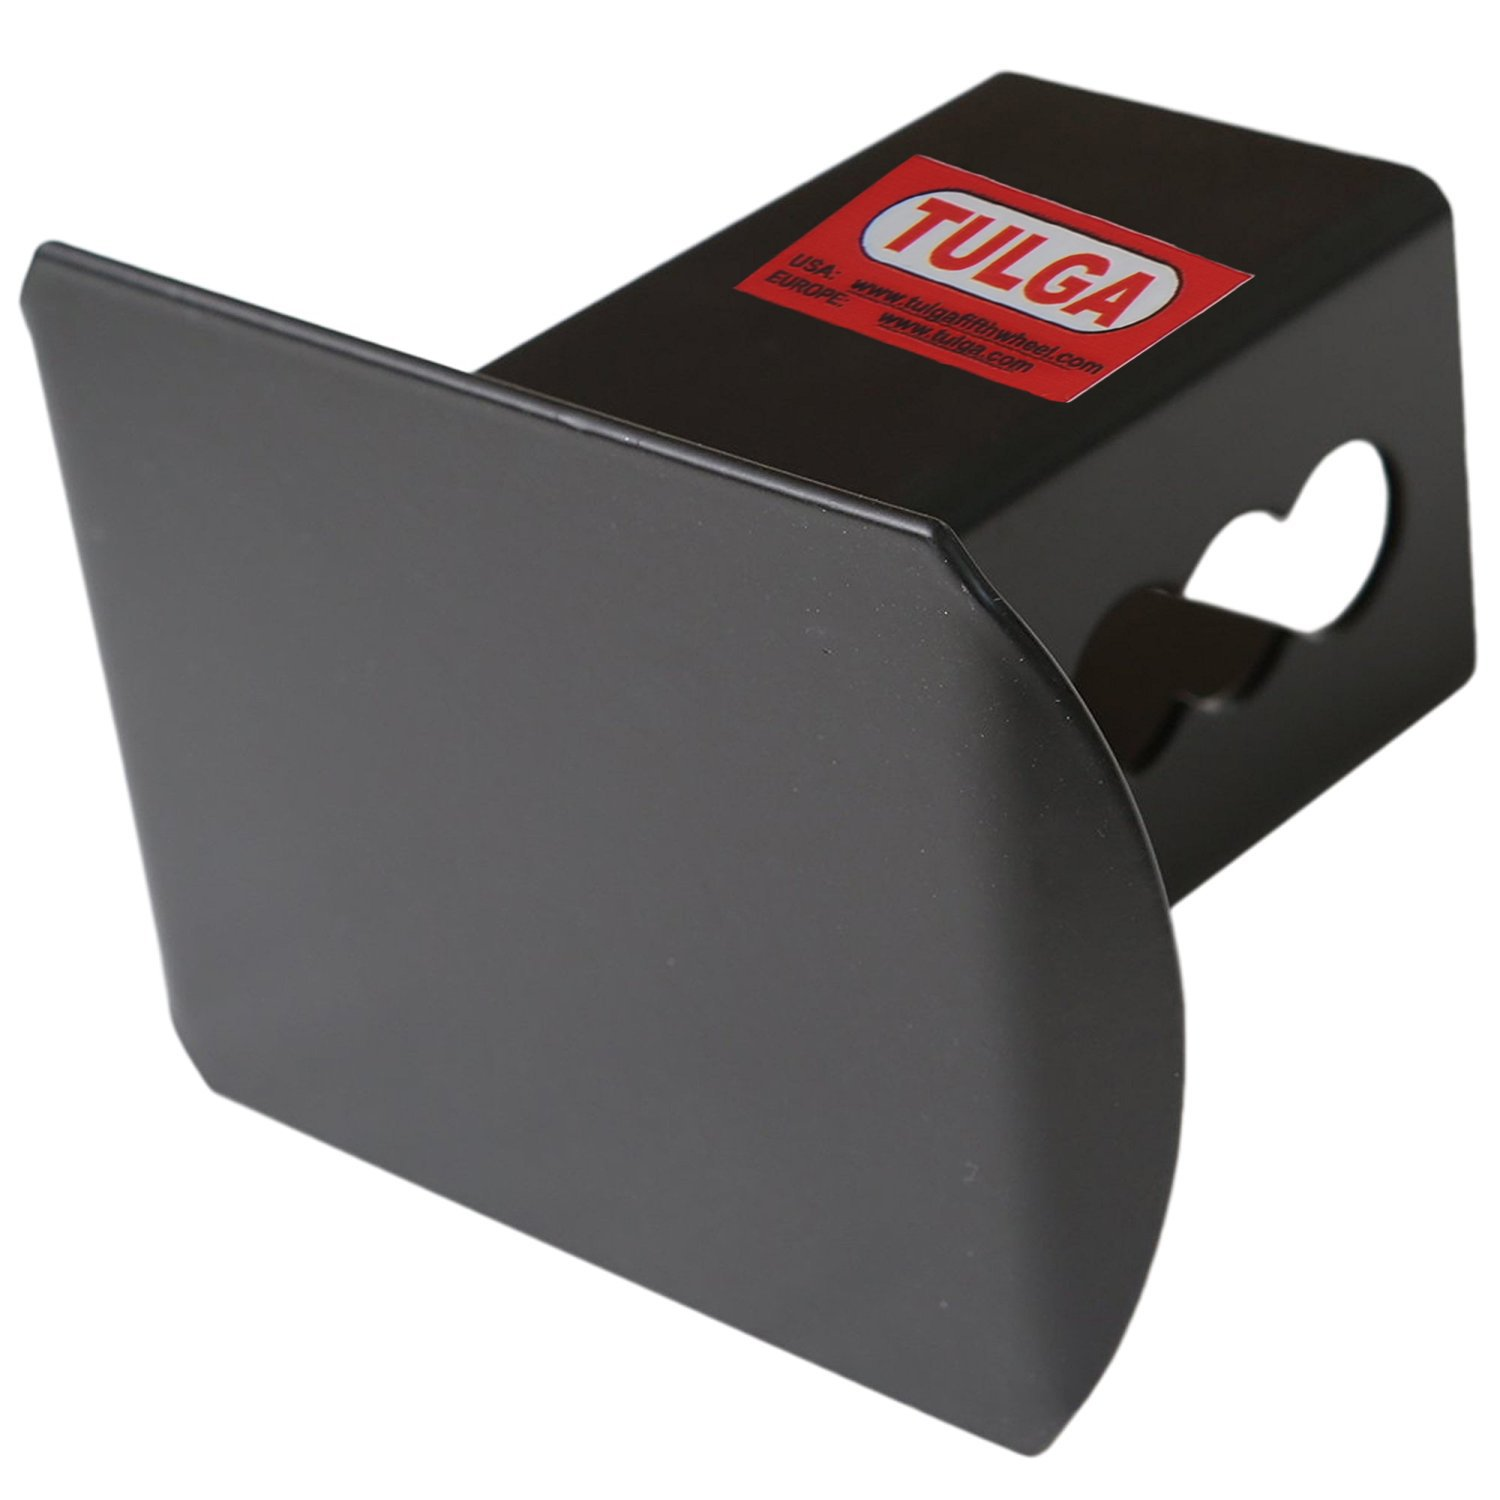 Tulga Fifth Wheel Co Steel Hitch Cover Black Matte Blank Tube Metal Trailer Towing Hitch Cover for 2'' Receivers by Tulga Fifth Wheel Co